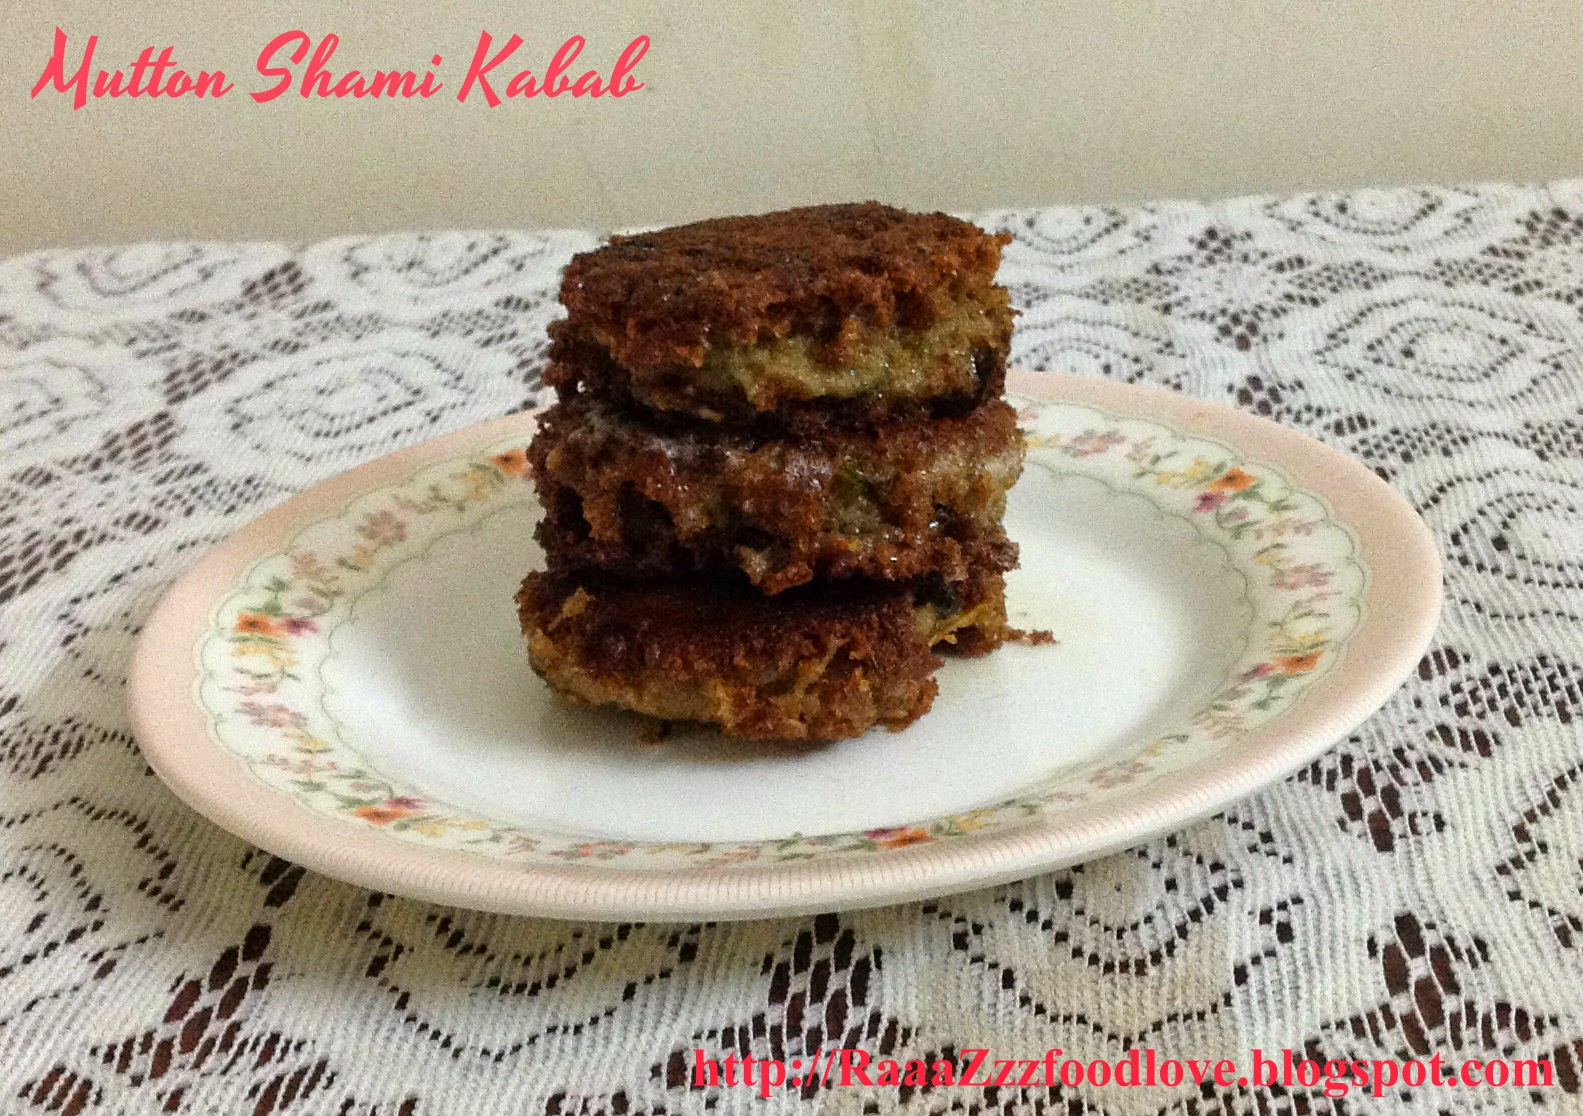 http://raaazzzfoodlove.blogspot.in/2013/11/mutton-shami-kabab.html